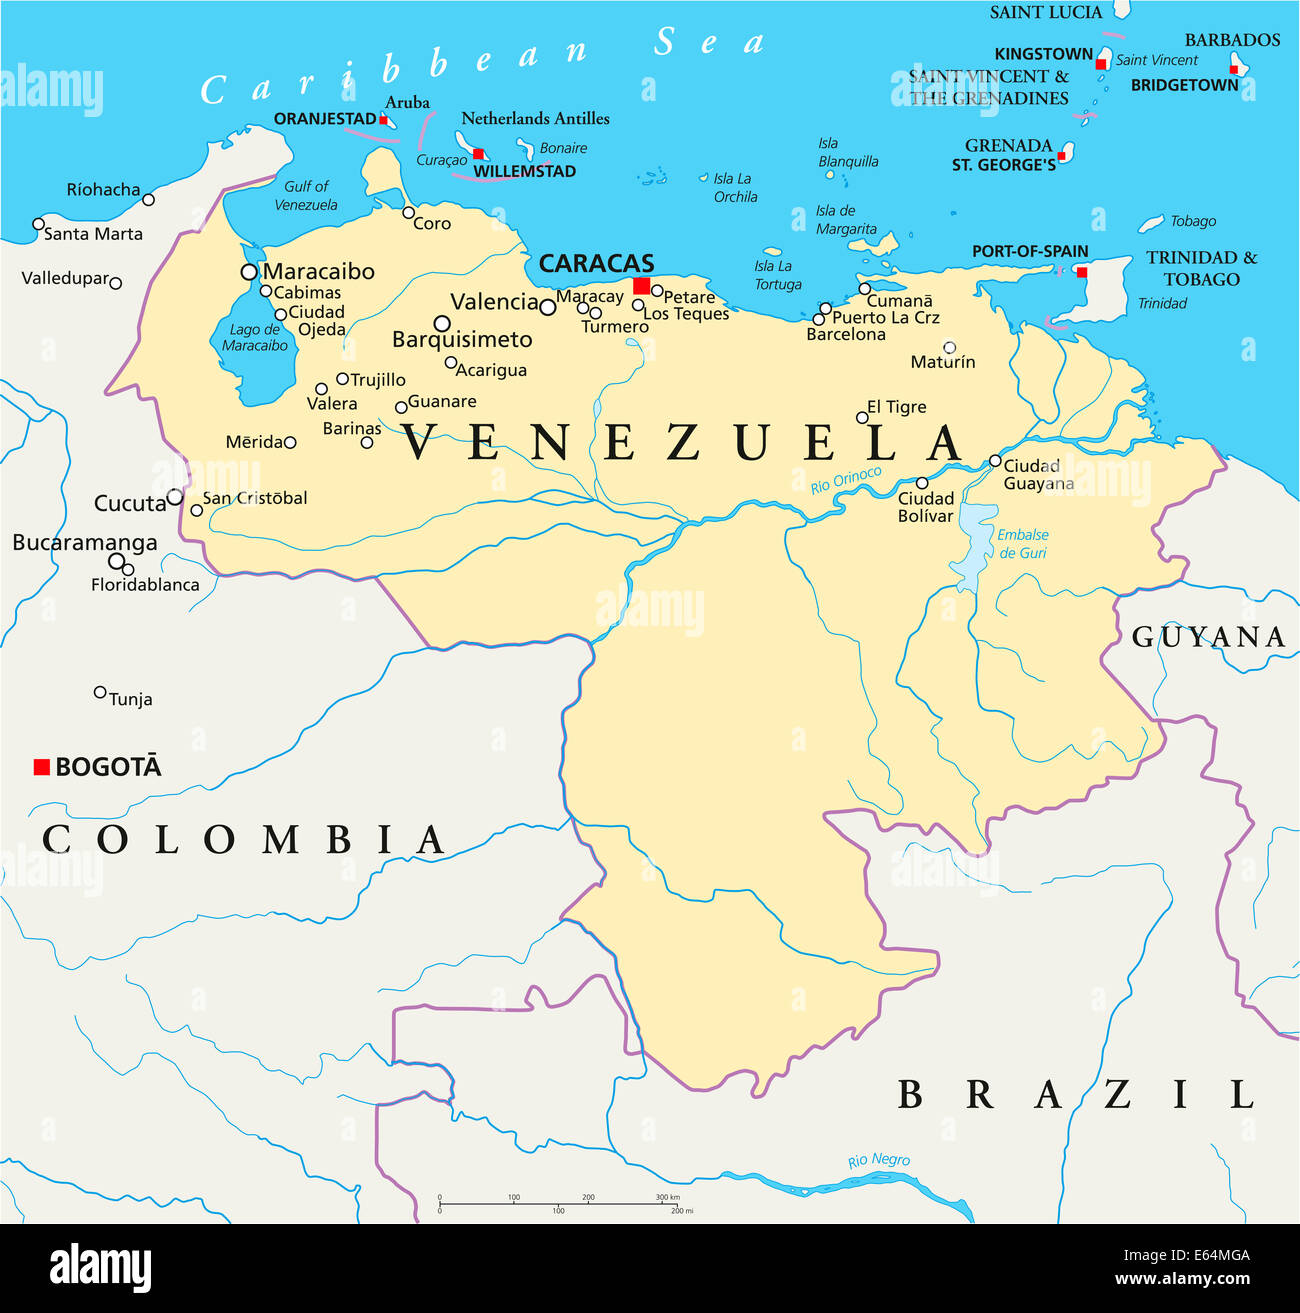 Venezuela Political Map Stock Photo: 72633354 - Alamy on labeled map of pennsylvania, labeled map of united kingdom, labeled map of the u.s, labeled map of tobago, labeled map of nigeria, labeled map of the british isles, labeled map of bodies of water, labeled map of fiji islands, labeled map of switzerland, labeled map of trinidad, labeled map of northern europe, labeled map of the caribbean islands, labeled map of iran, labeled map of new caledonia, labeled map of amazon river, labeled map of indochina, labeled map of western united states, labeled map of syria, labeled map of ussr, labeled map of iraq,